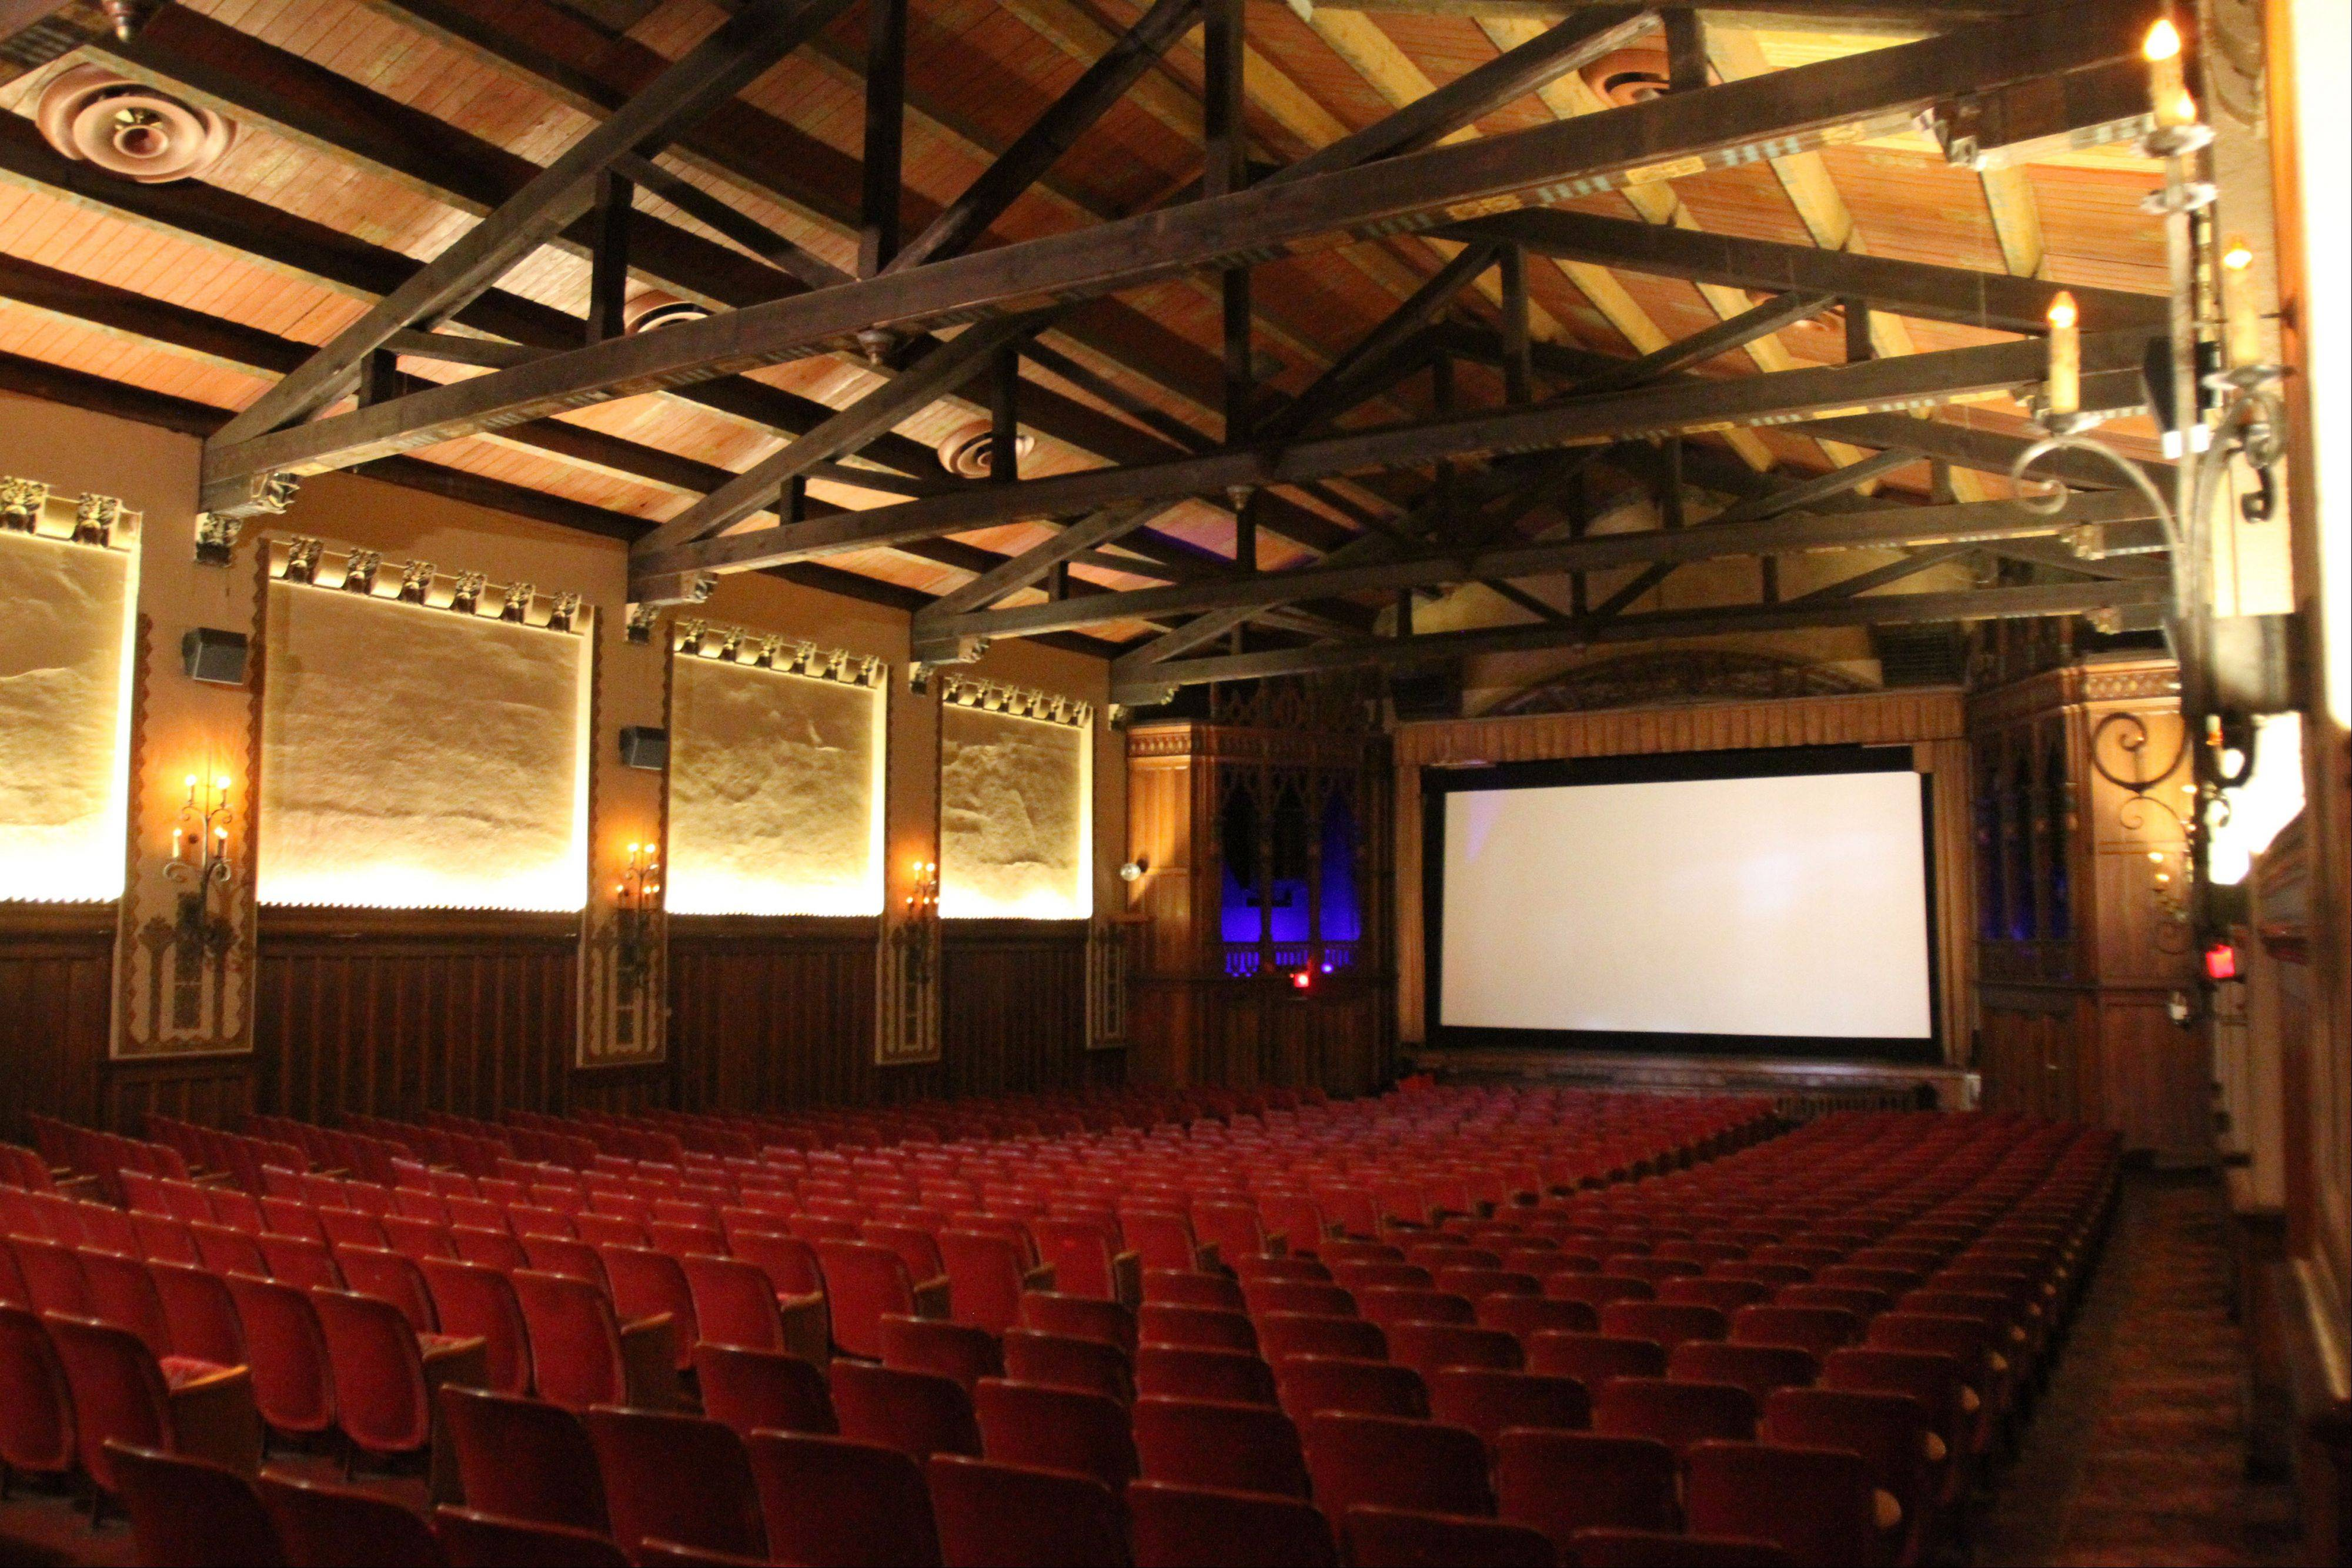 Though sitting in an auditorium designed in the 1920s, Catlow audiences will soon be watching movies projected digitally in true 21st-century style.